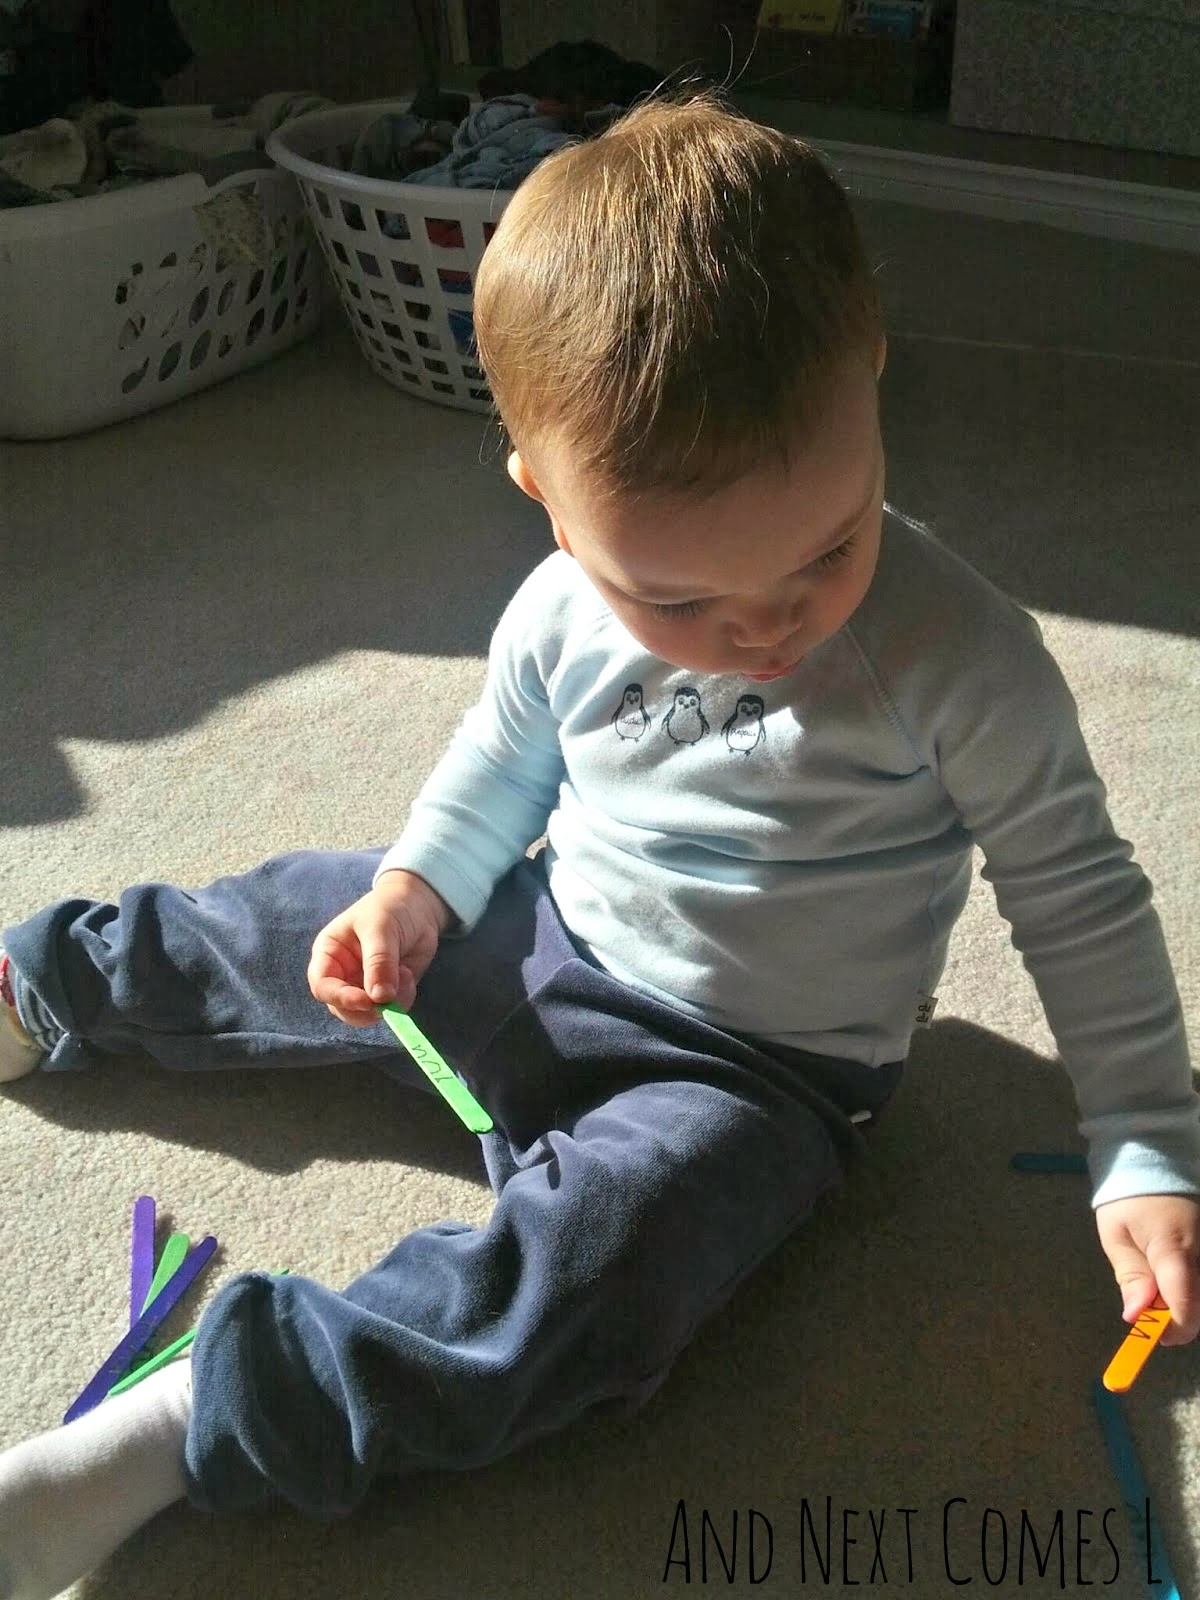 Toddler playing with craft sticks from And Next Comes L